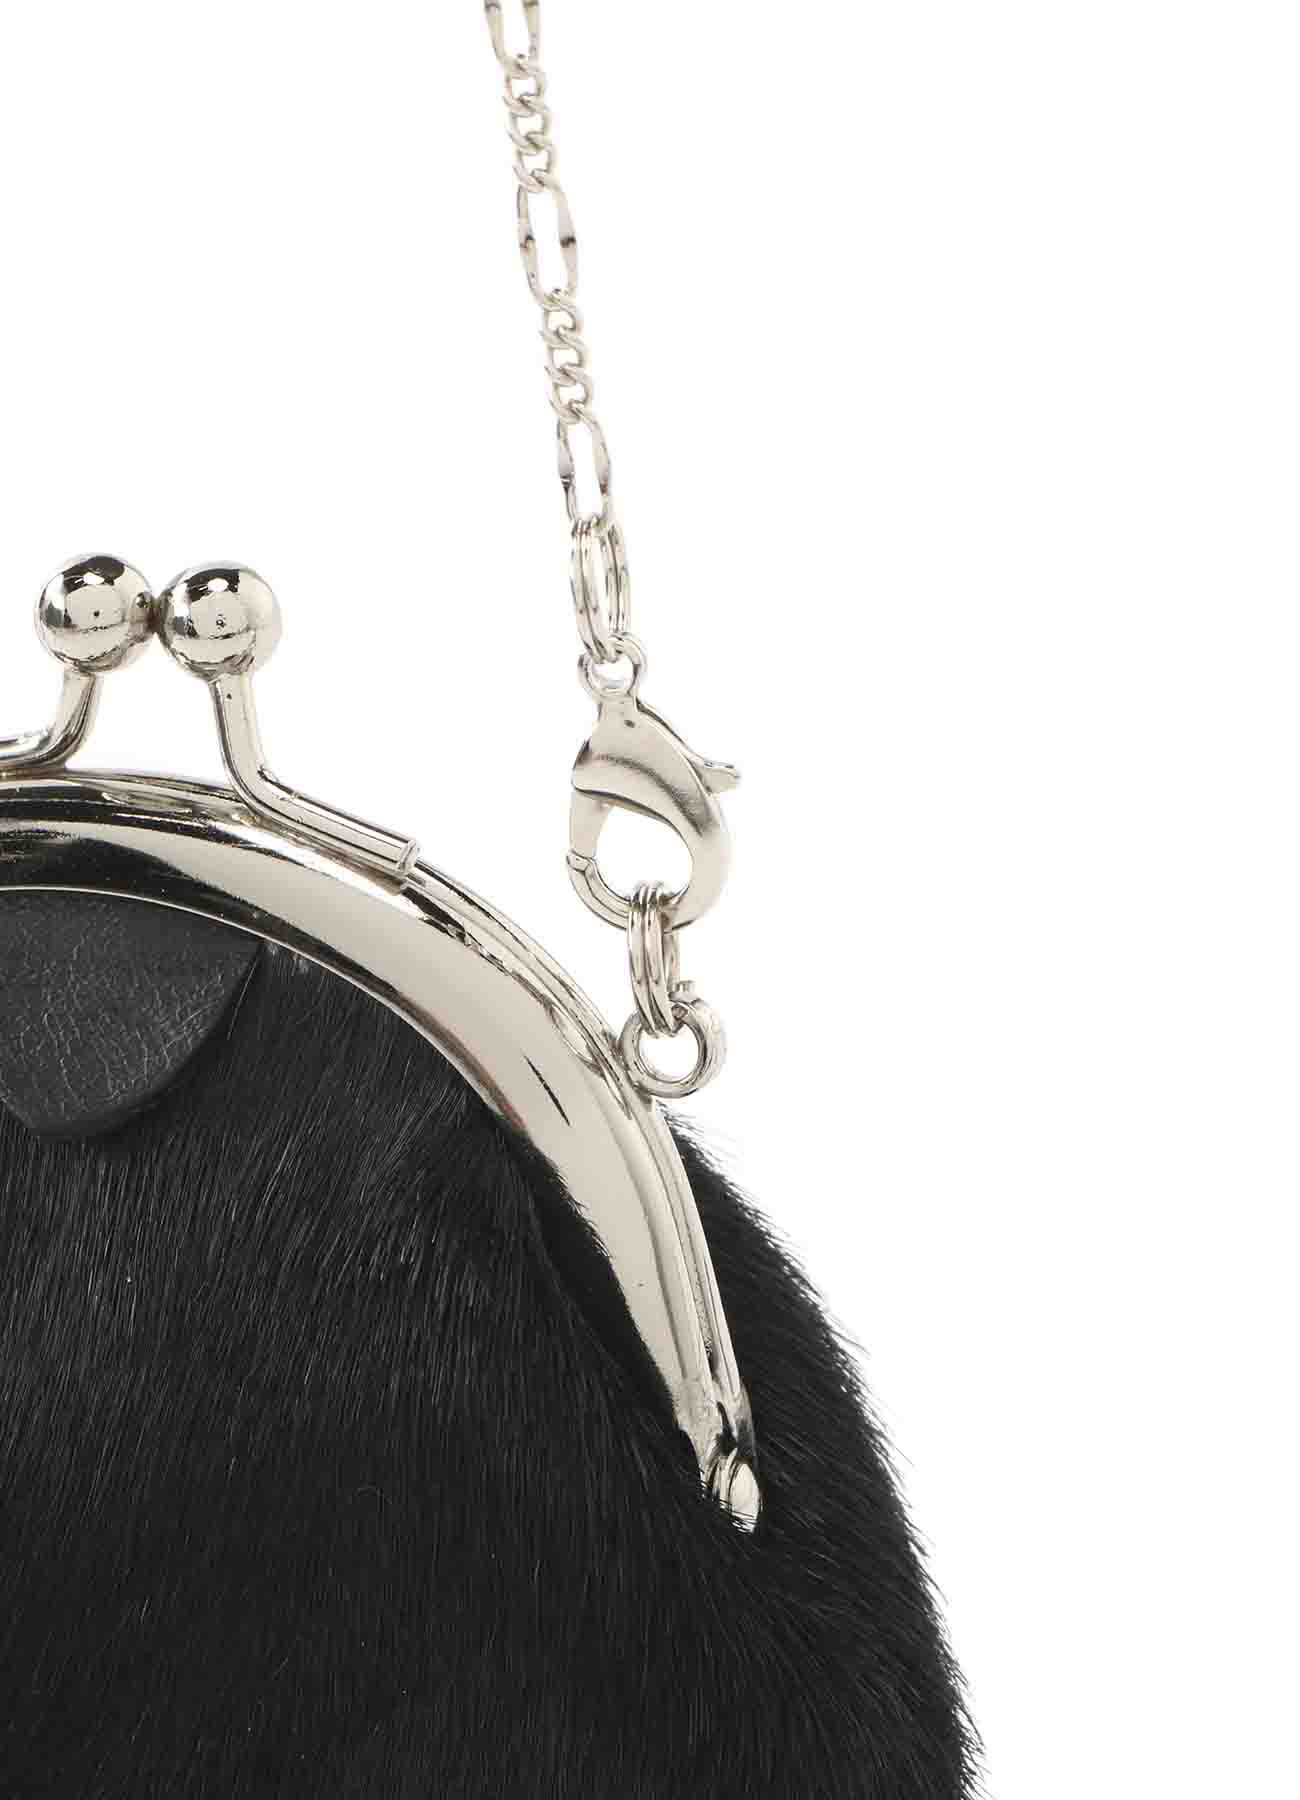 HORSE LEATHER CLASP NECKLACE